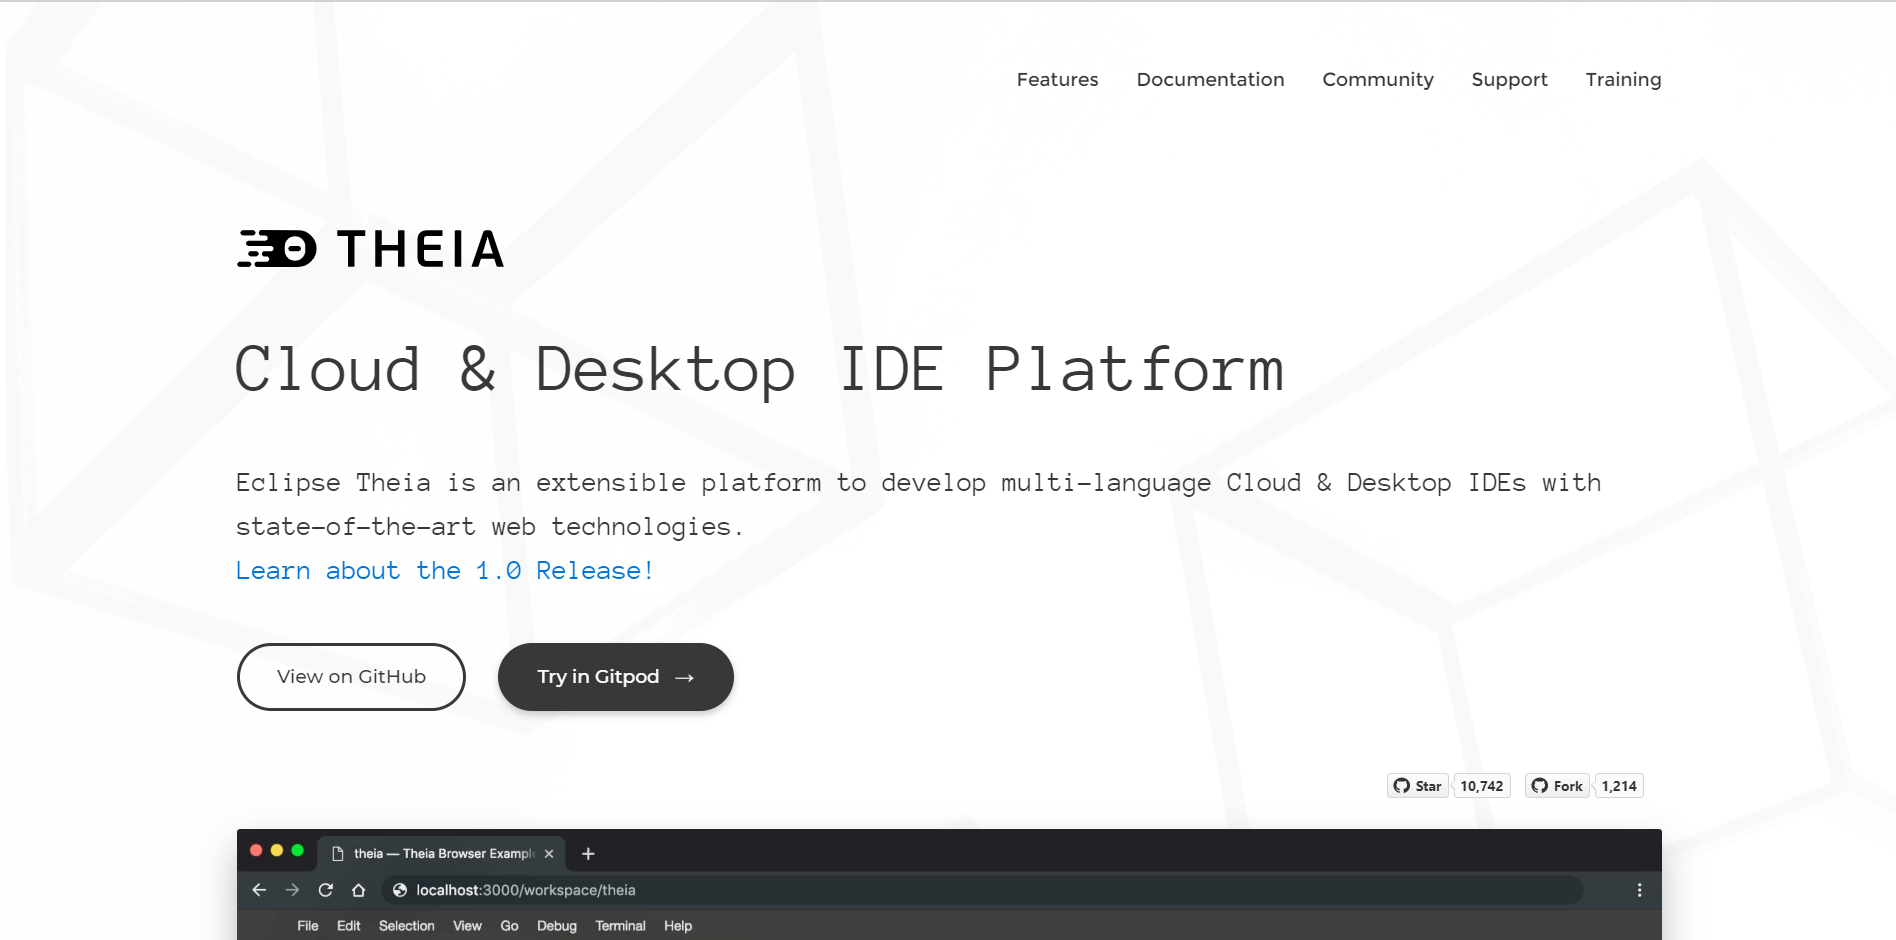 Theia landing page